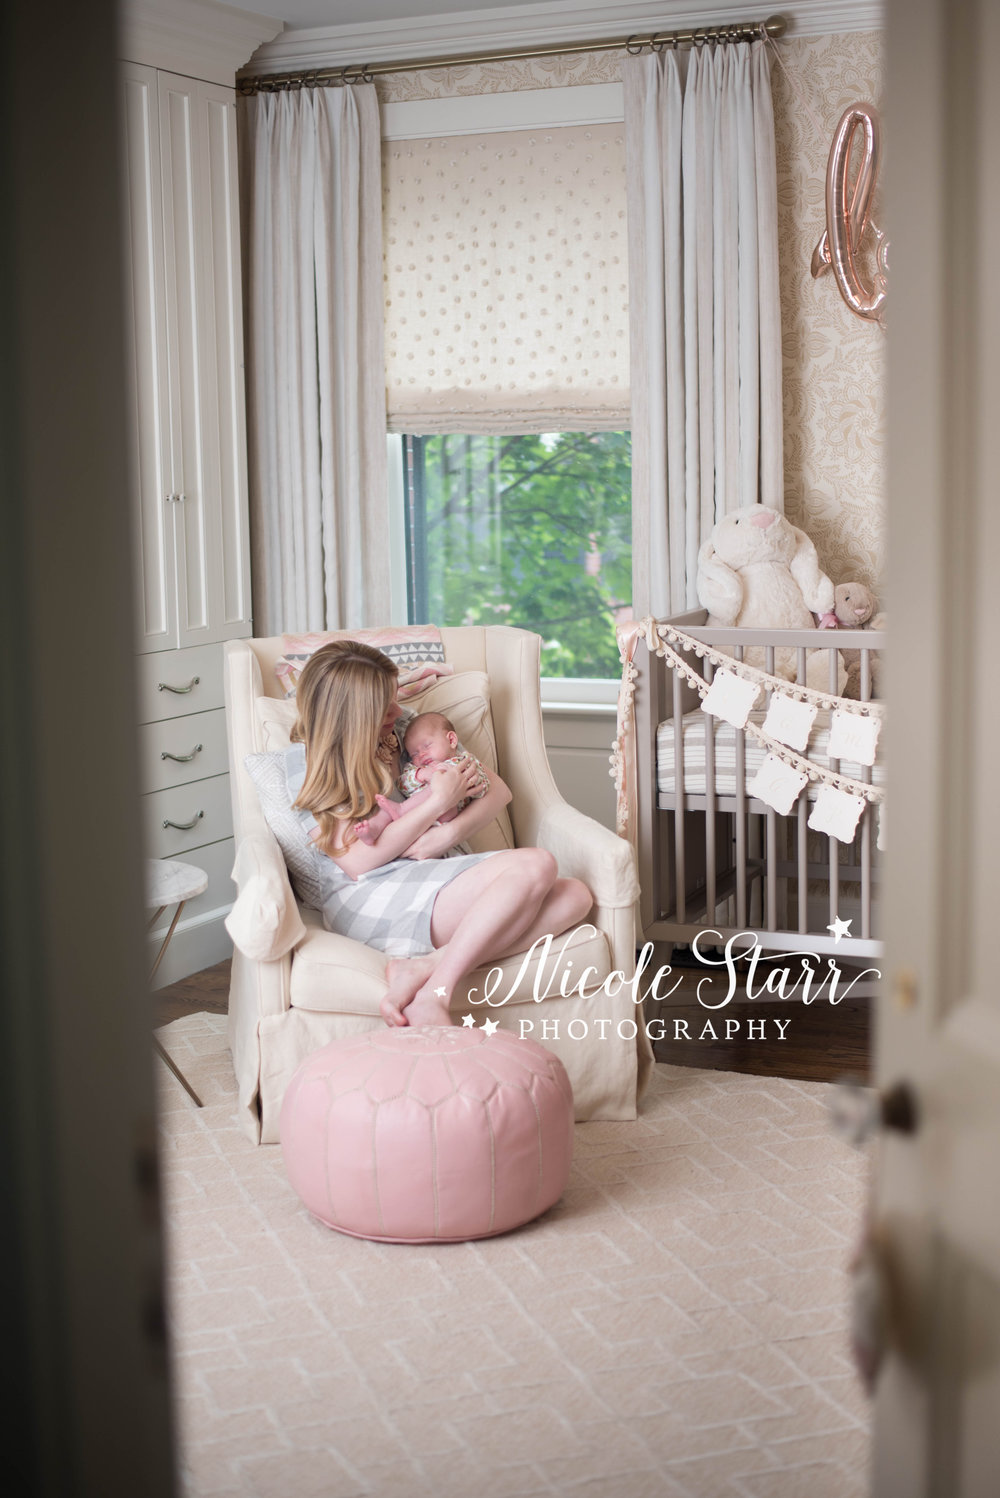 Nicole Starr Photography | Saratoga Springs NY photographer | Upstate NY photographer | Motherhood photographer | Boston family photographer